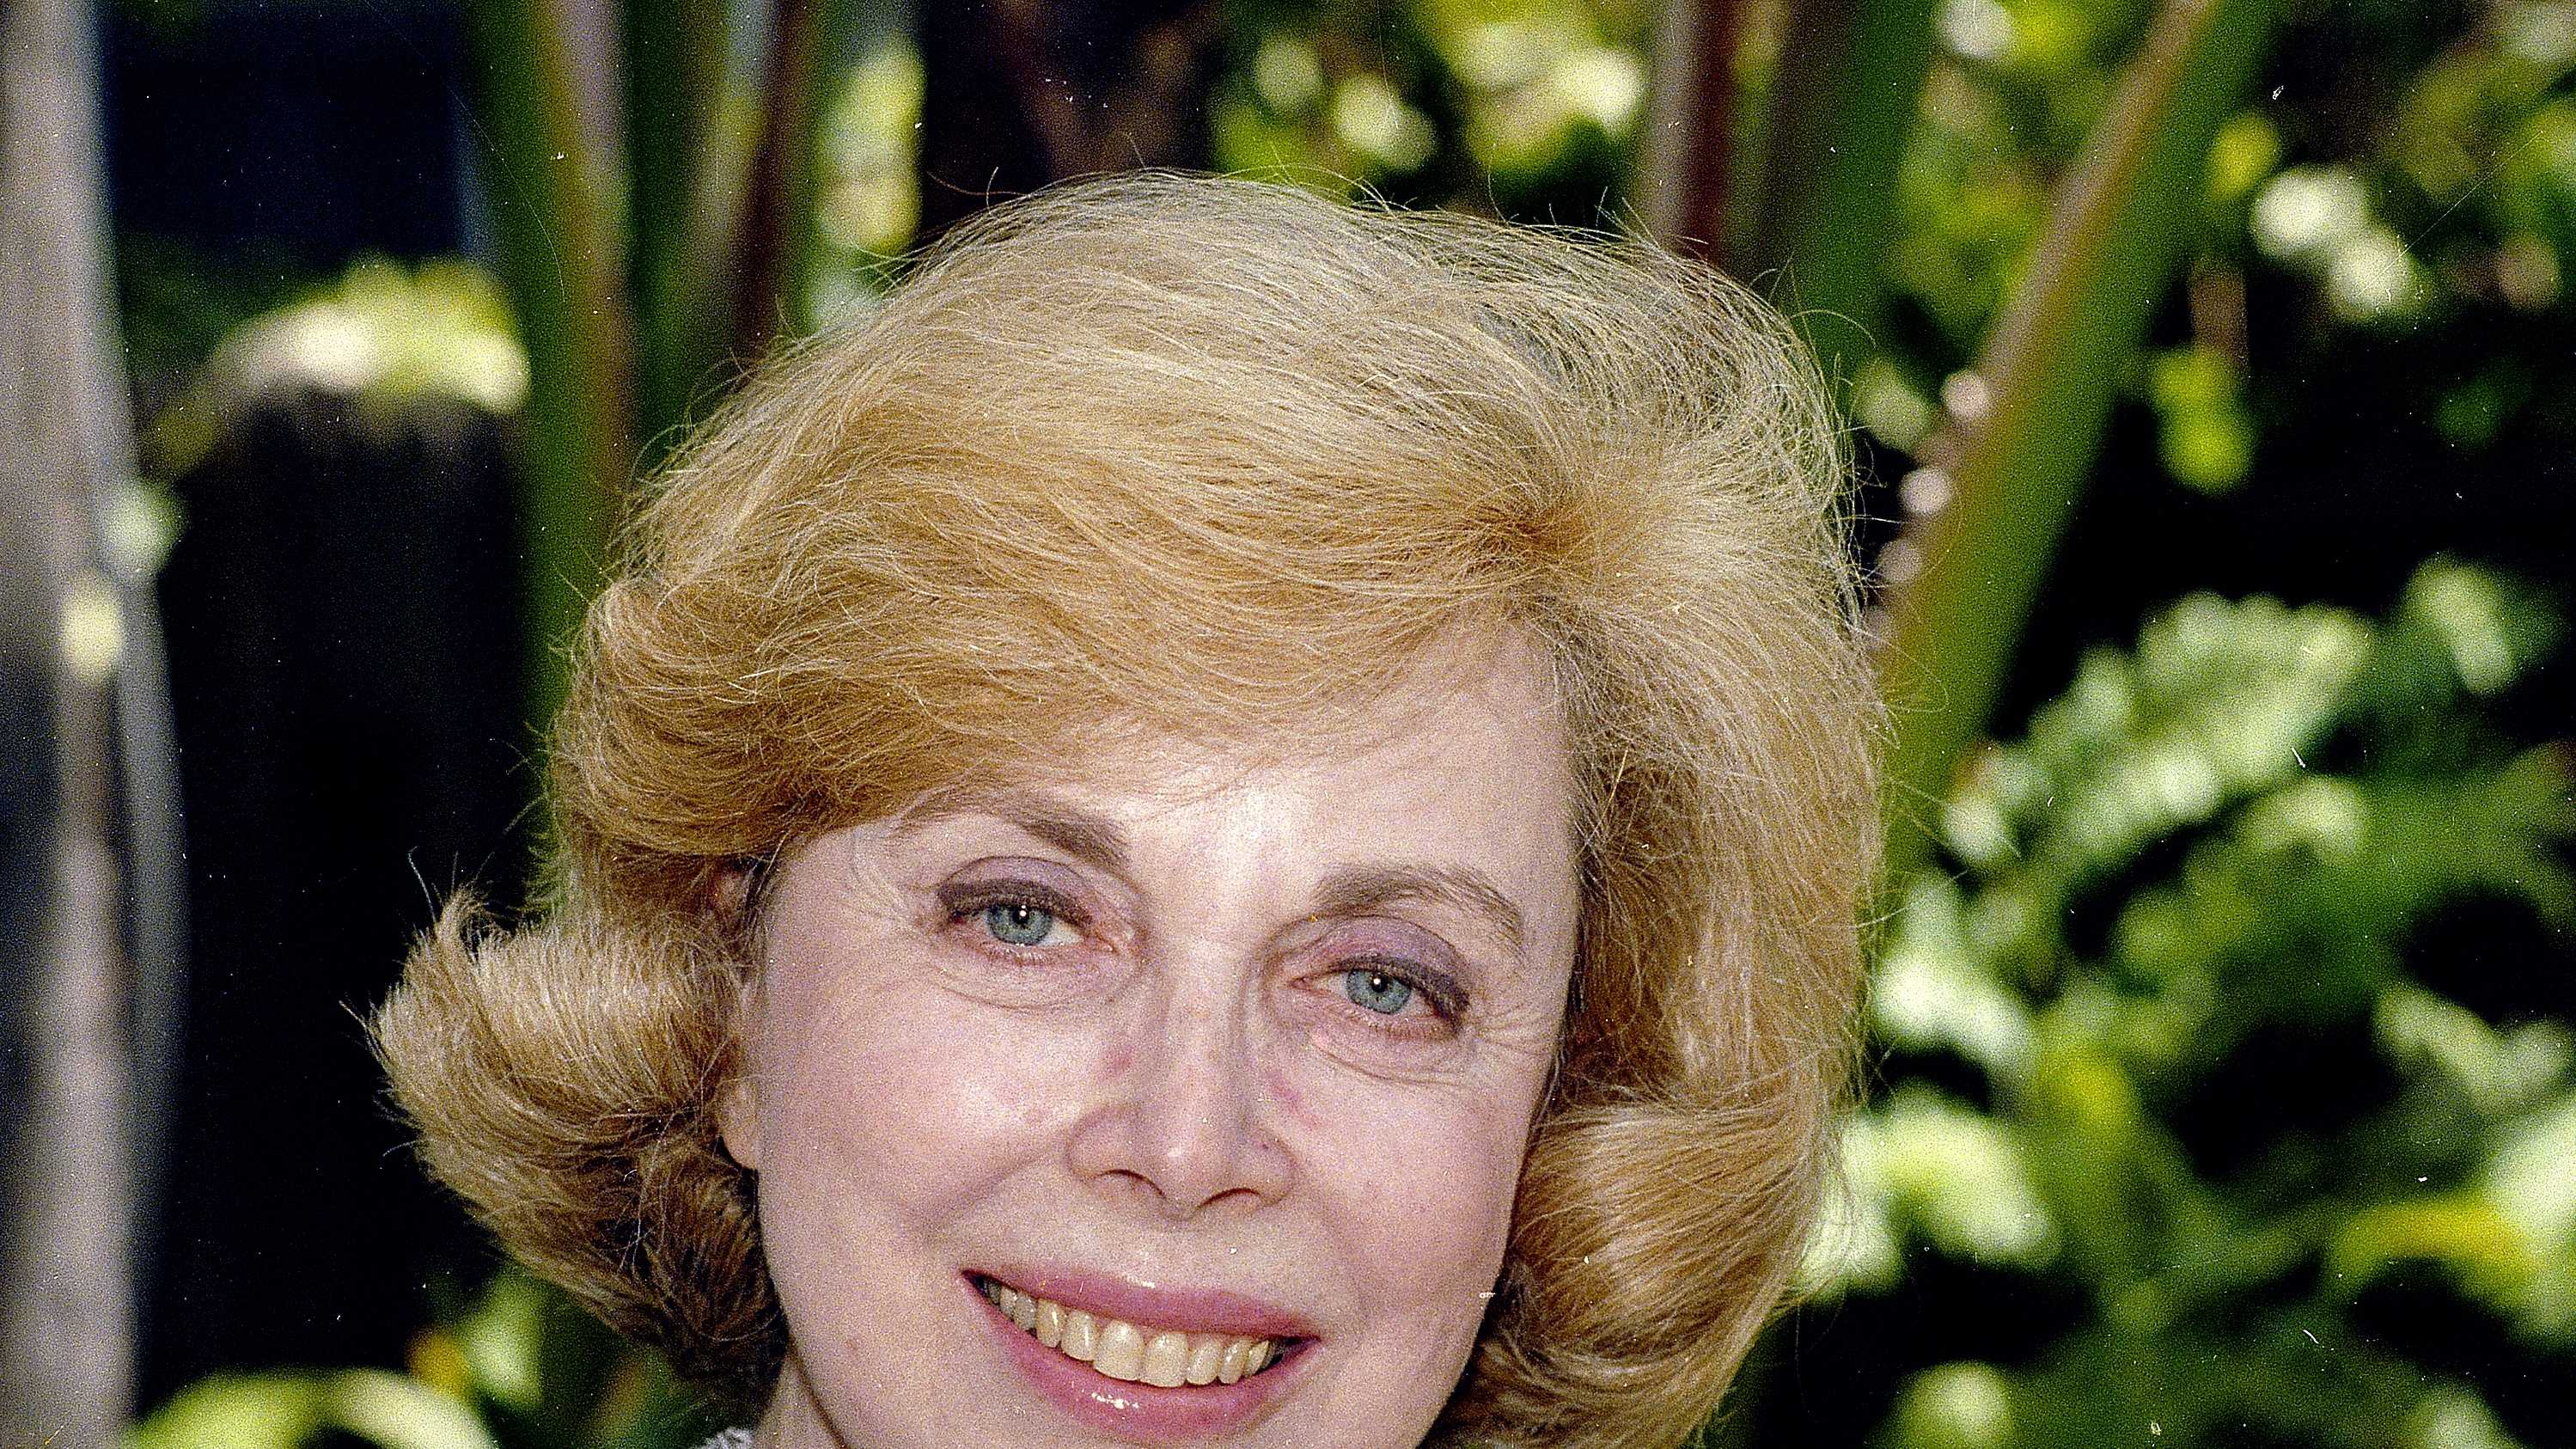 Popular psychologist, columnist, and television and film personality Joyce Brothers died in May at 85.